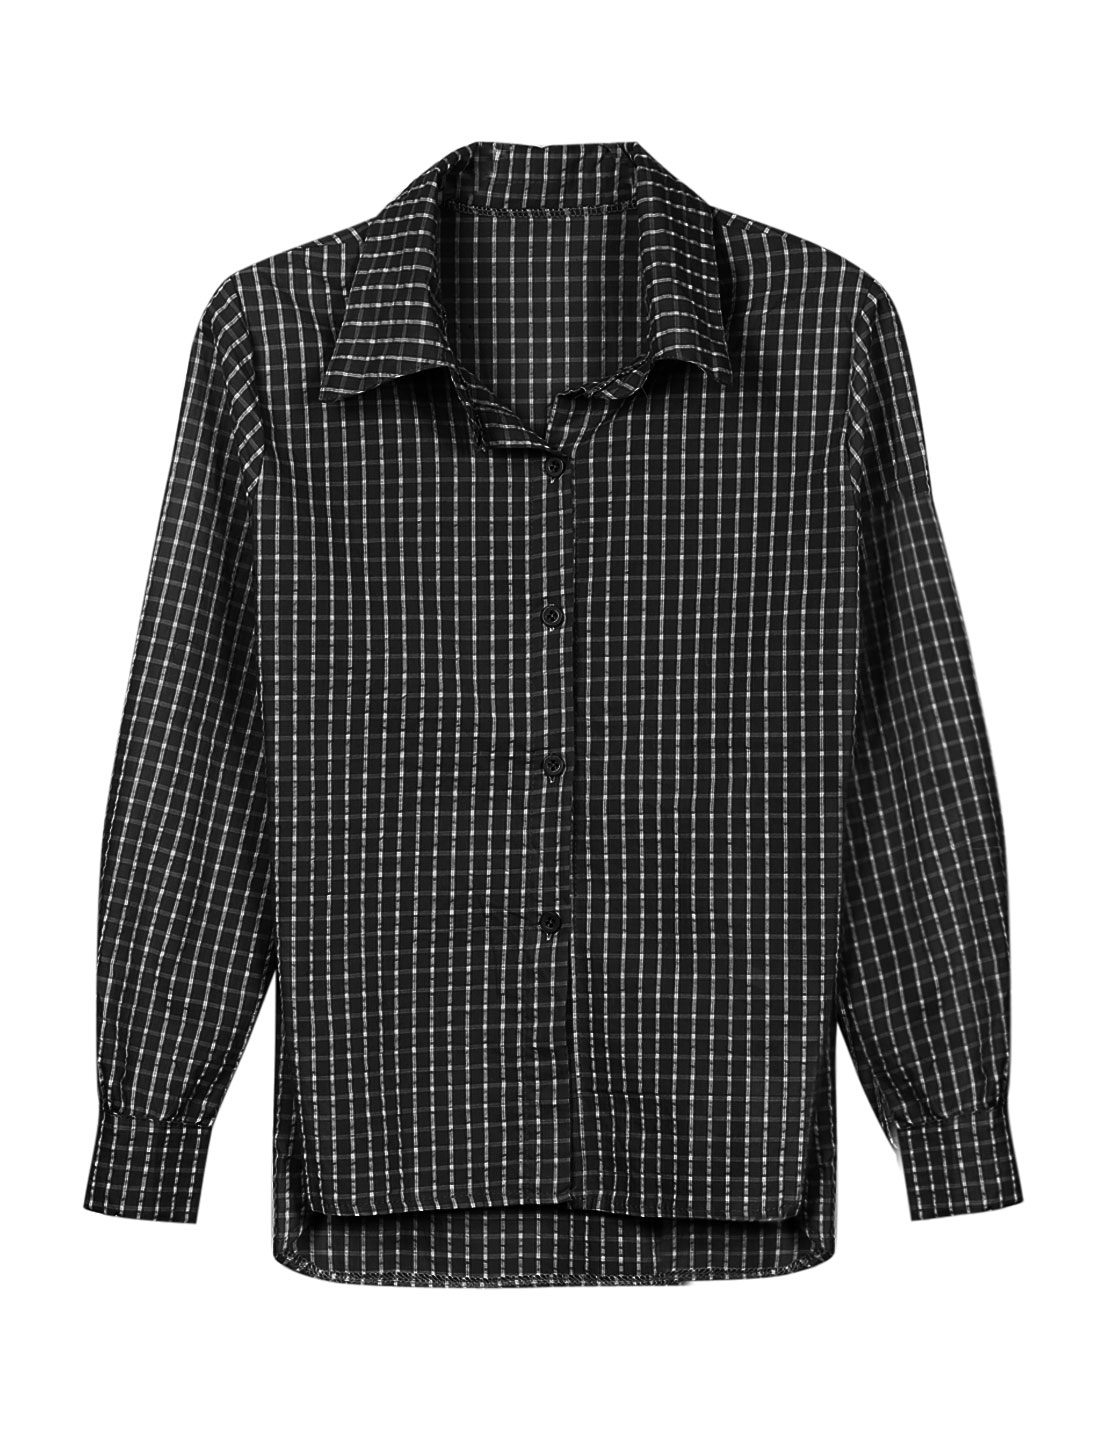 Lady Point Collar Long Sleeve Plaids Button Down Shirt Black XS